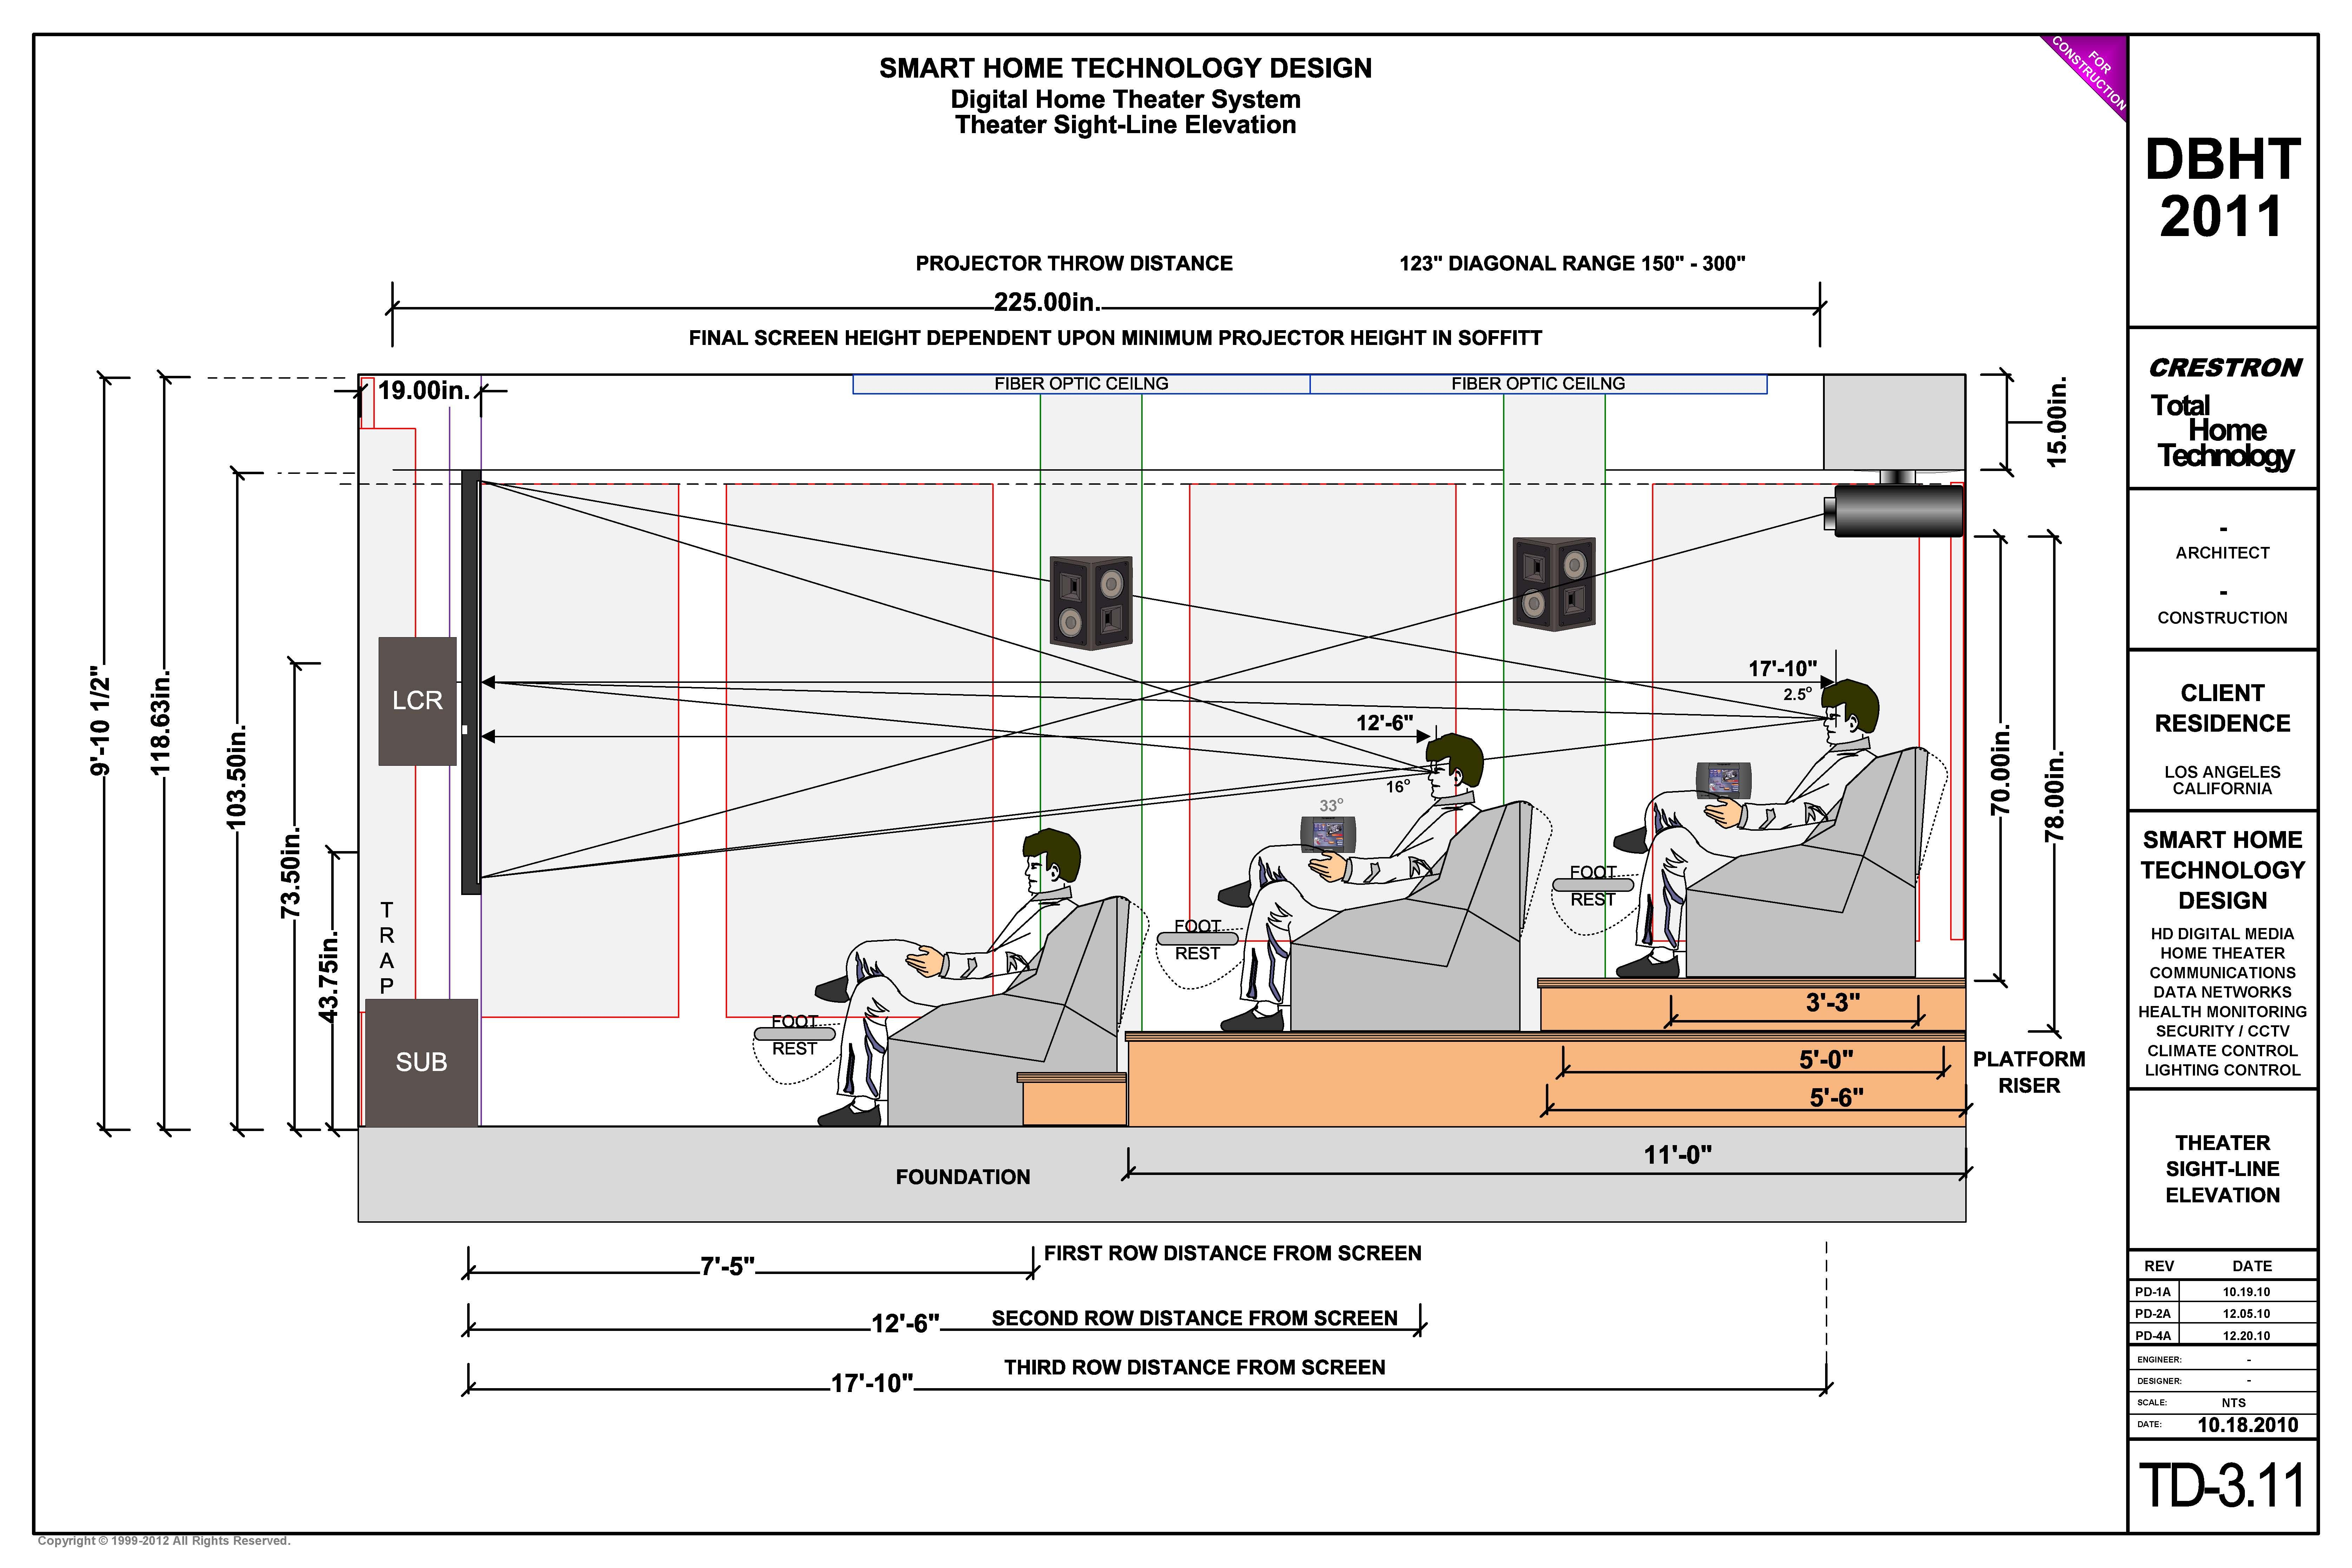 7 1 home theater wiring diagram tree probability calculator 21 43 basement design ideas awesome picture